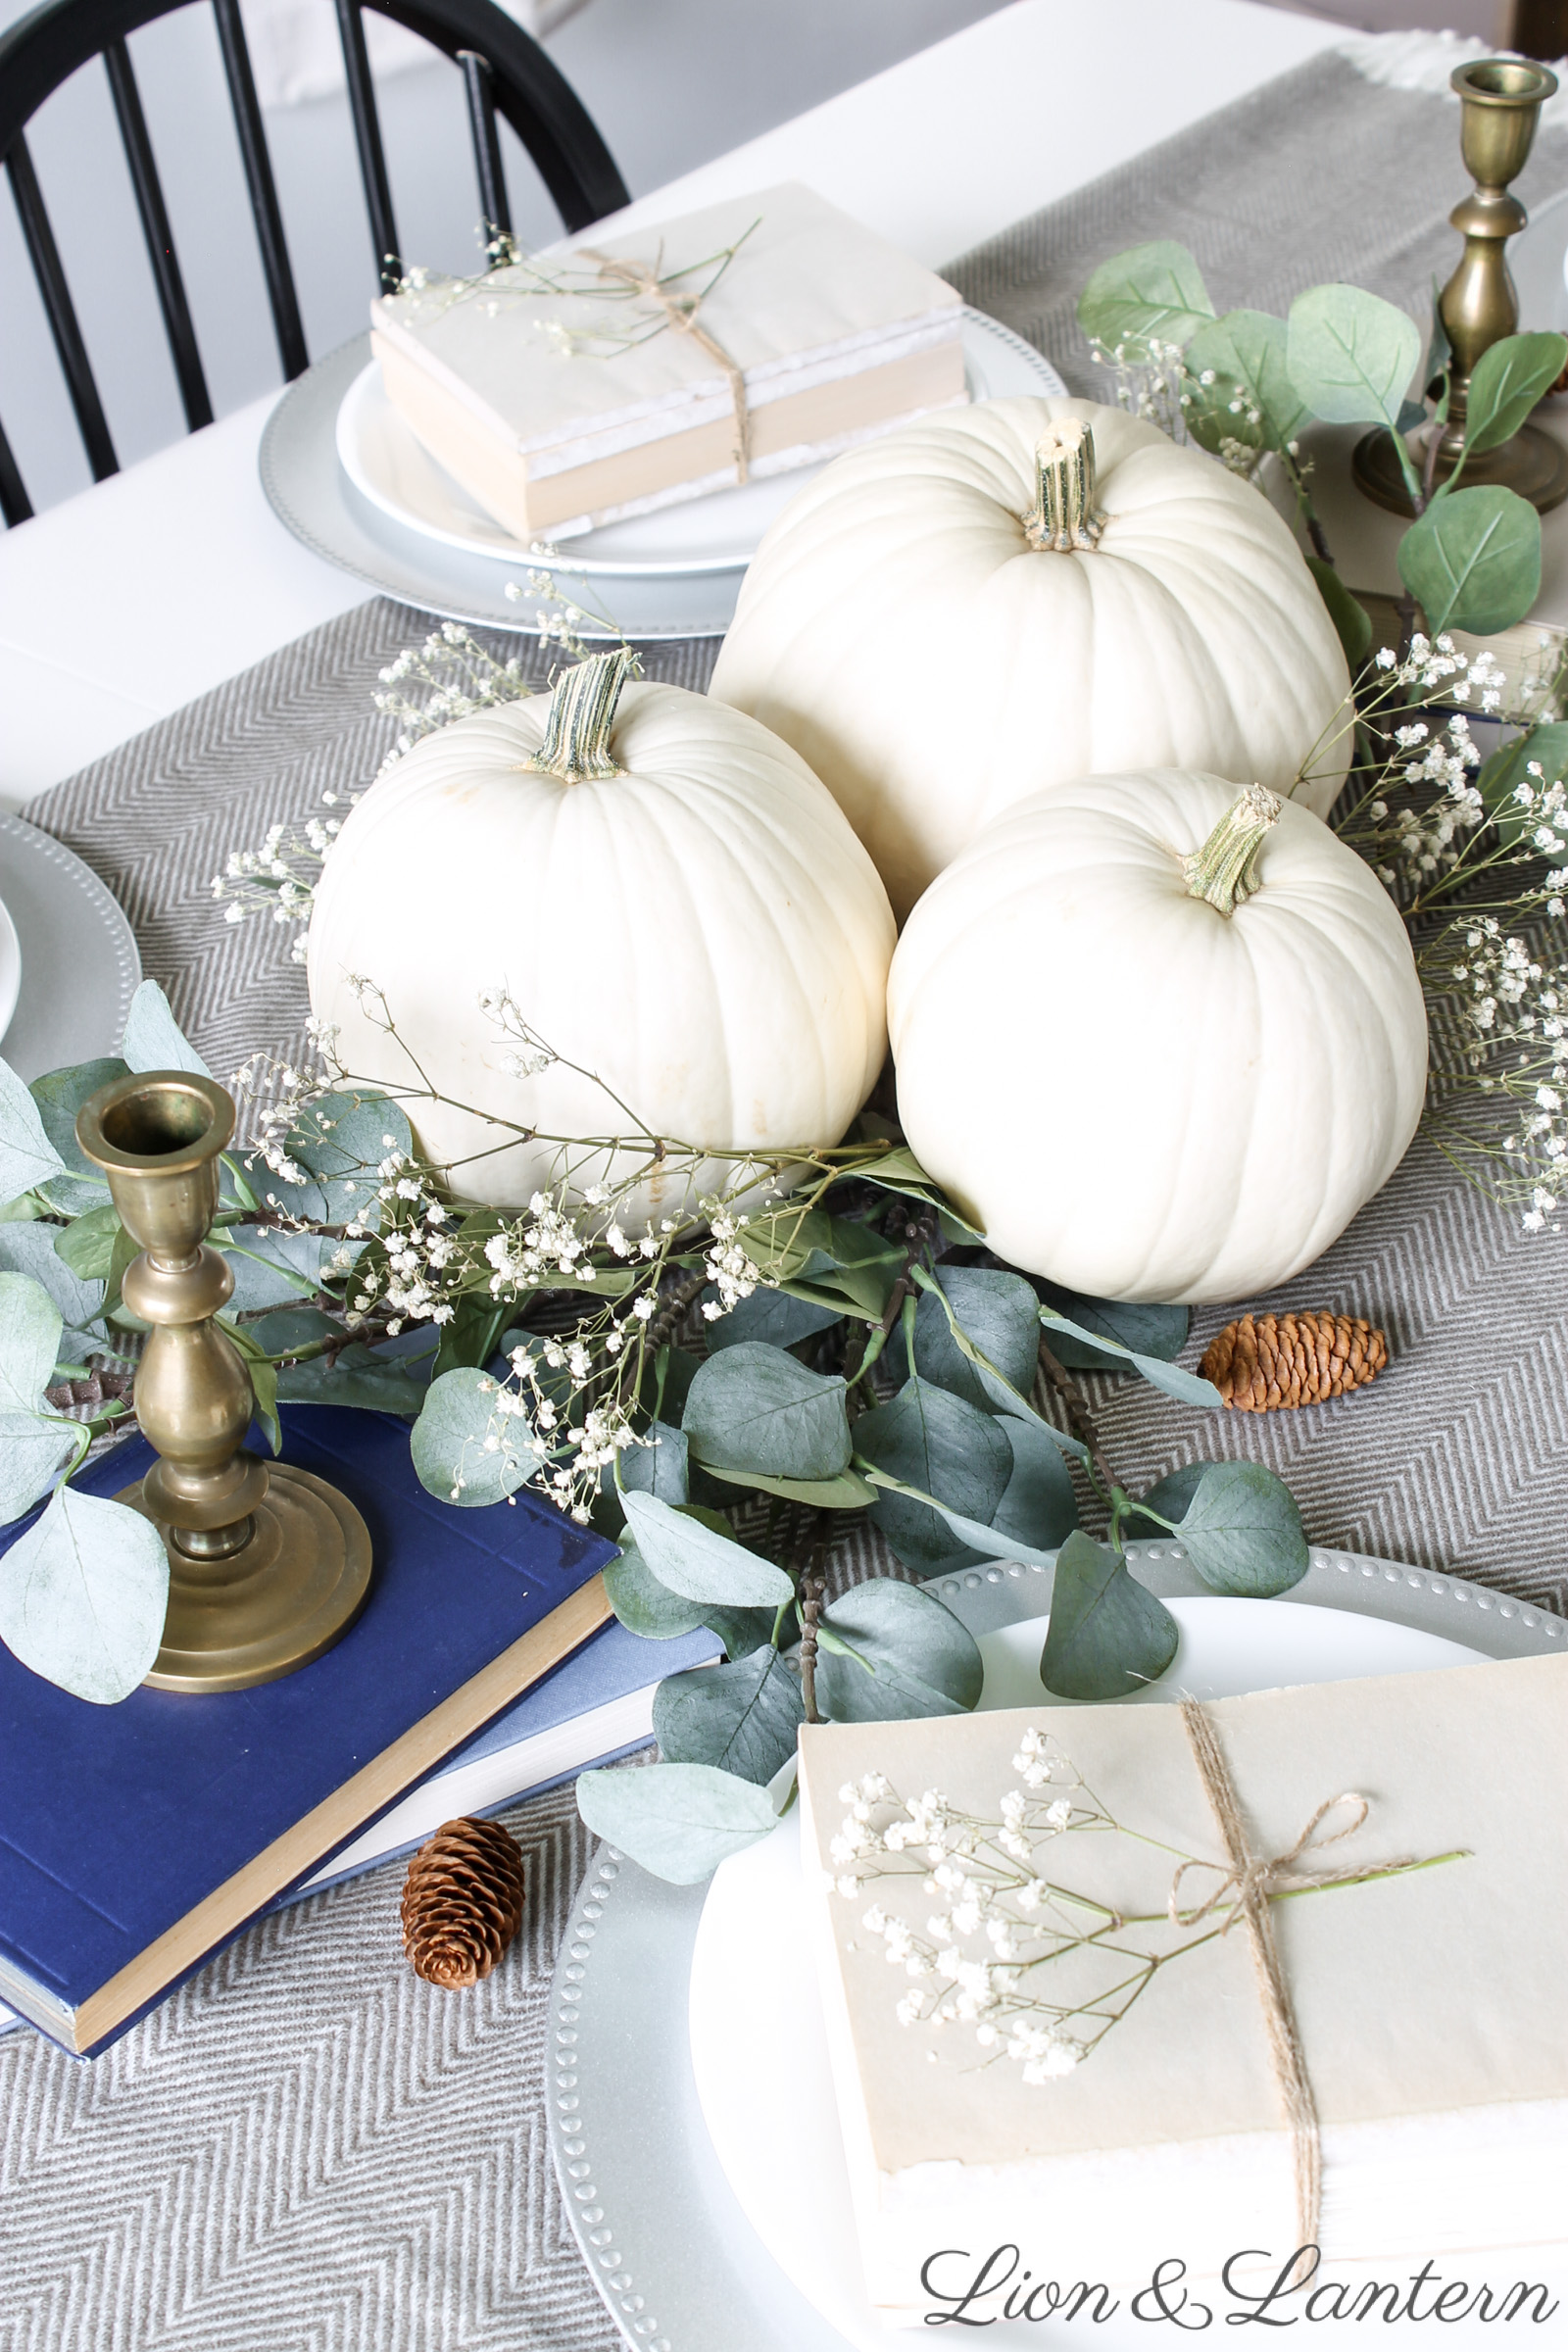 Thanksgiving Tablescape at LionAndLantern.com. Farmhouse Thanksgiving, Thanksgiving table decor, holiday decor, neutral, budget, eucalyptus, white pumpkins, book bundles, black chairs, white table.